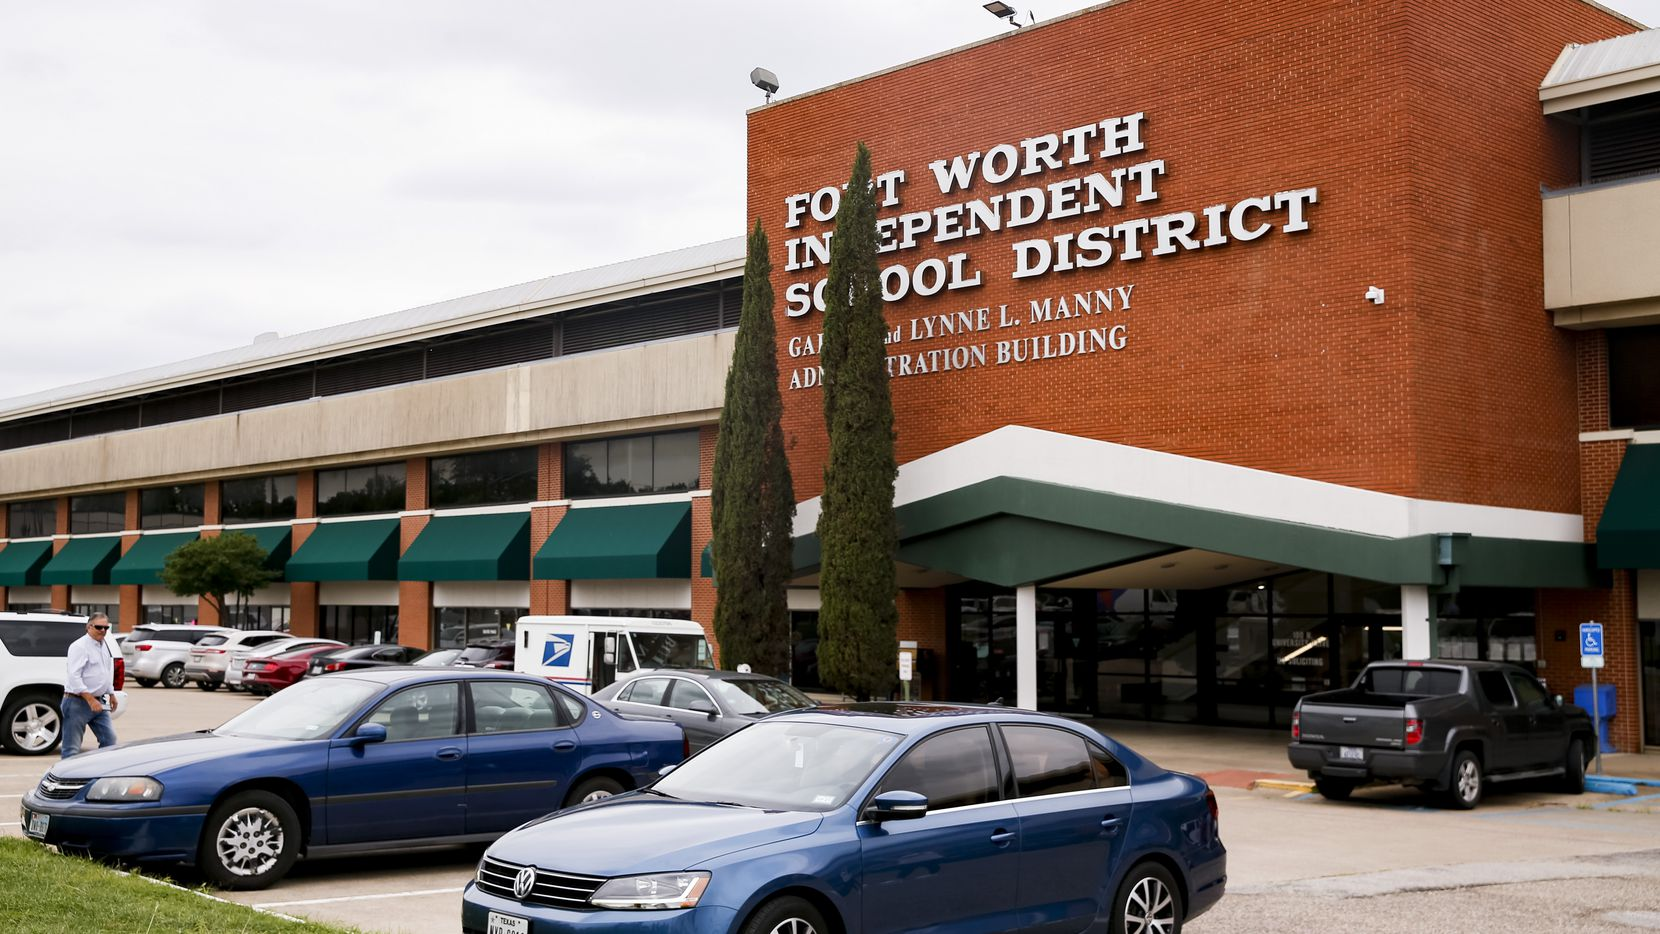 The Forth Worth ISD building on Tuesday, June 22, 2021, in Fort Worth.